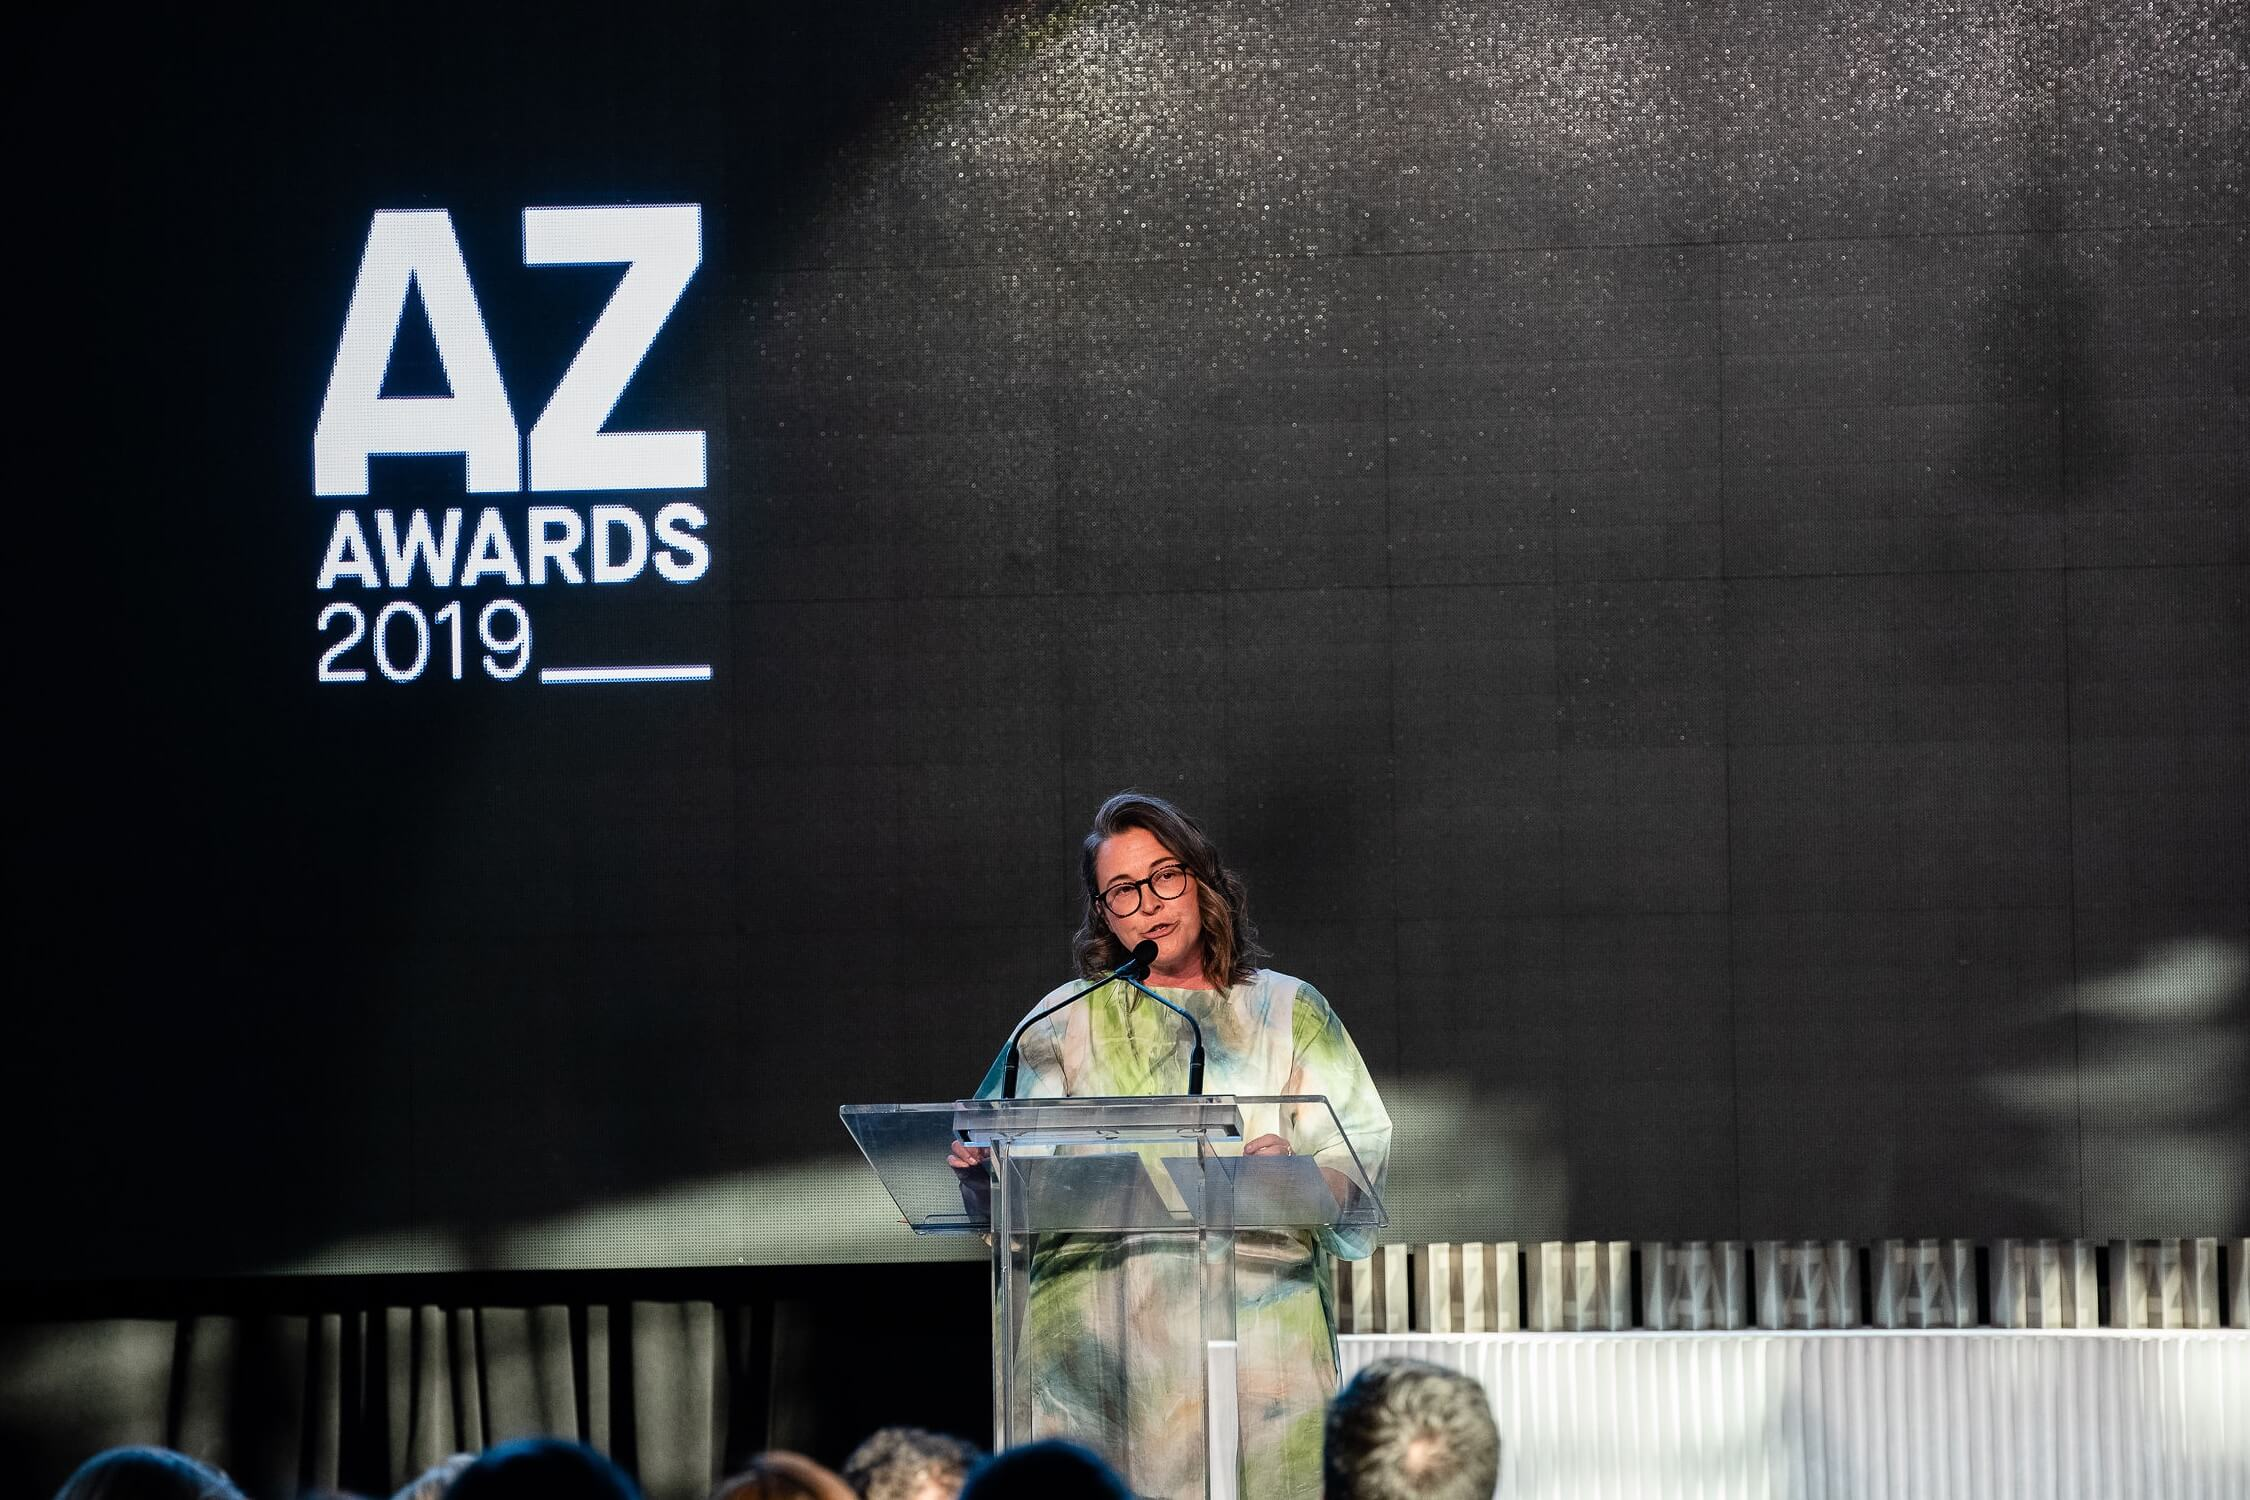 MC Jessica Allen, of CTV's The Social, set the irreverent tone for the evening, AZ Awards 2019: Scenes from the Gala